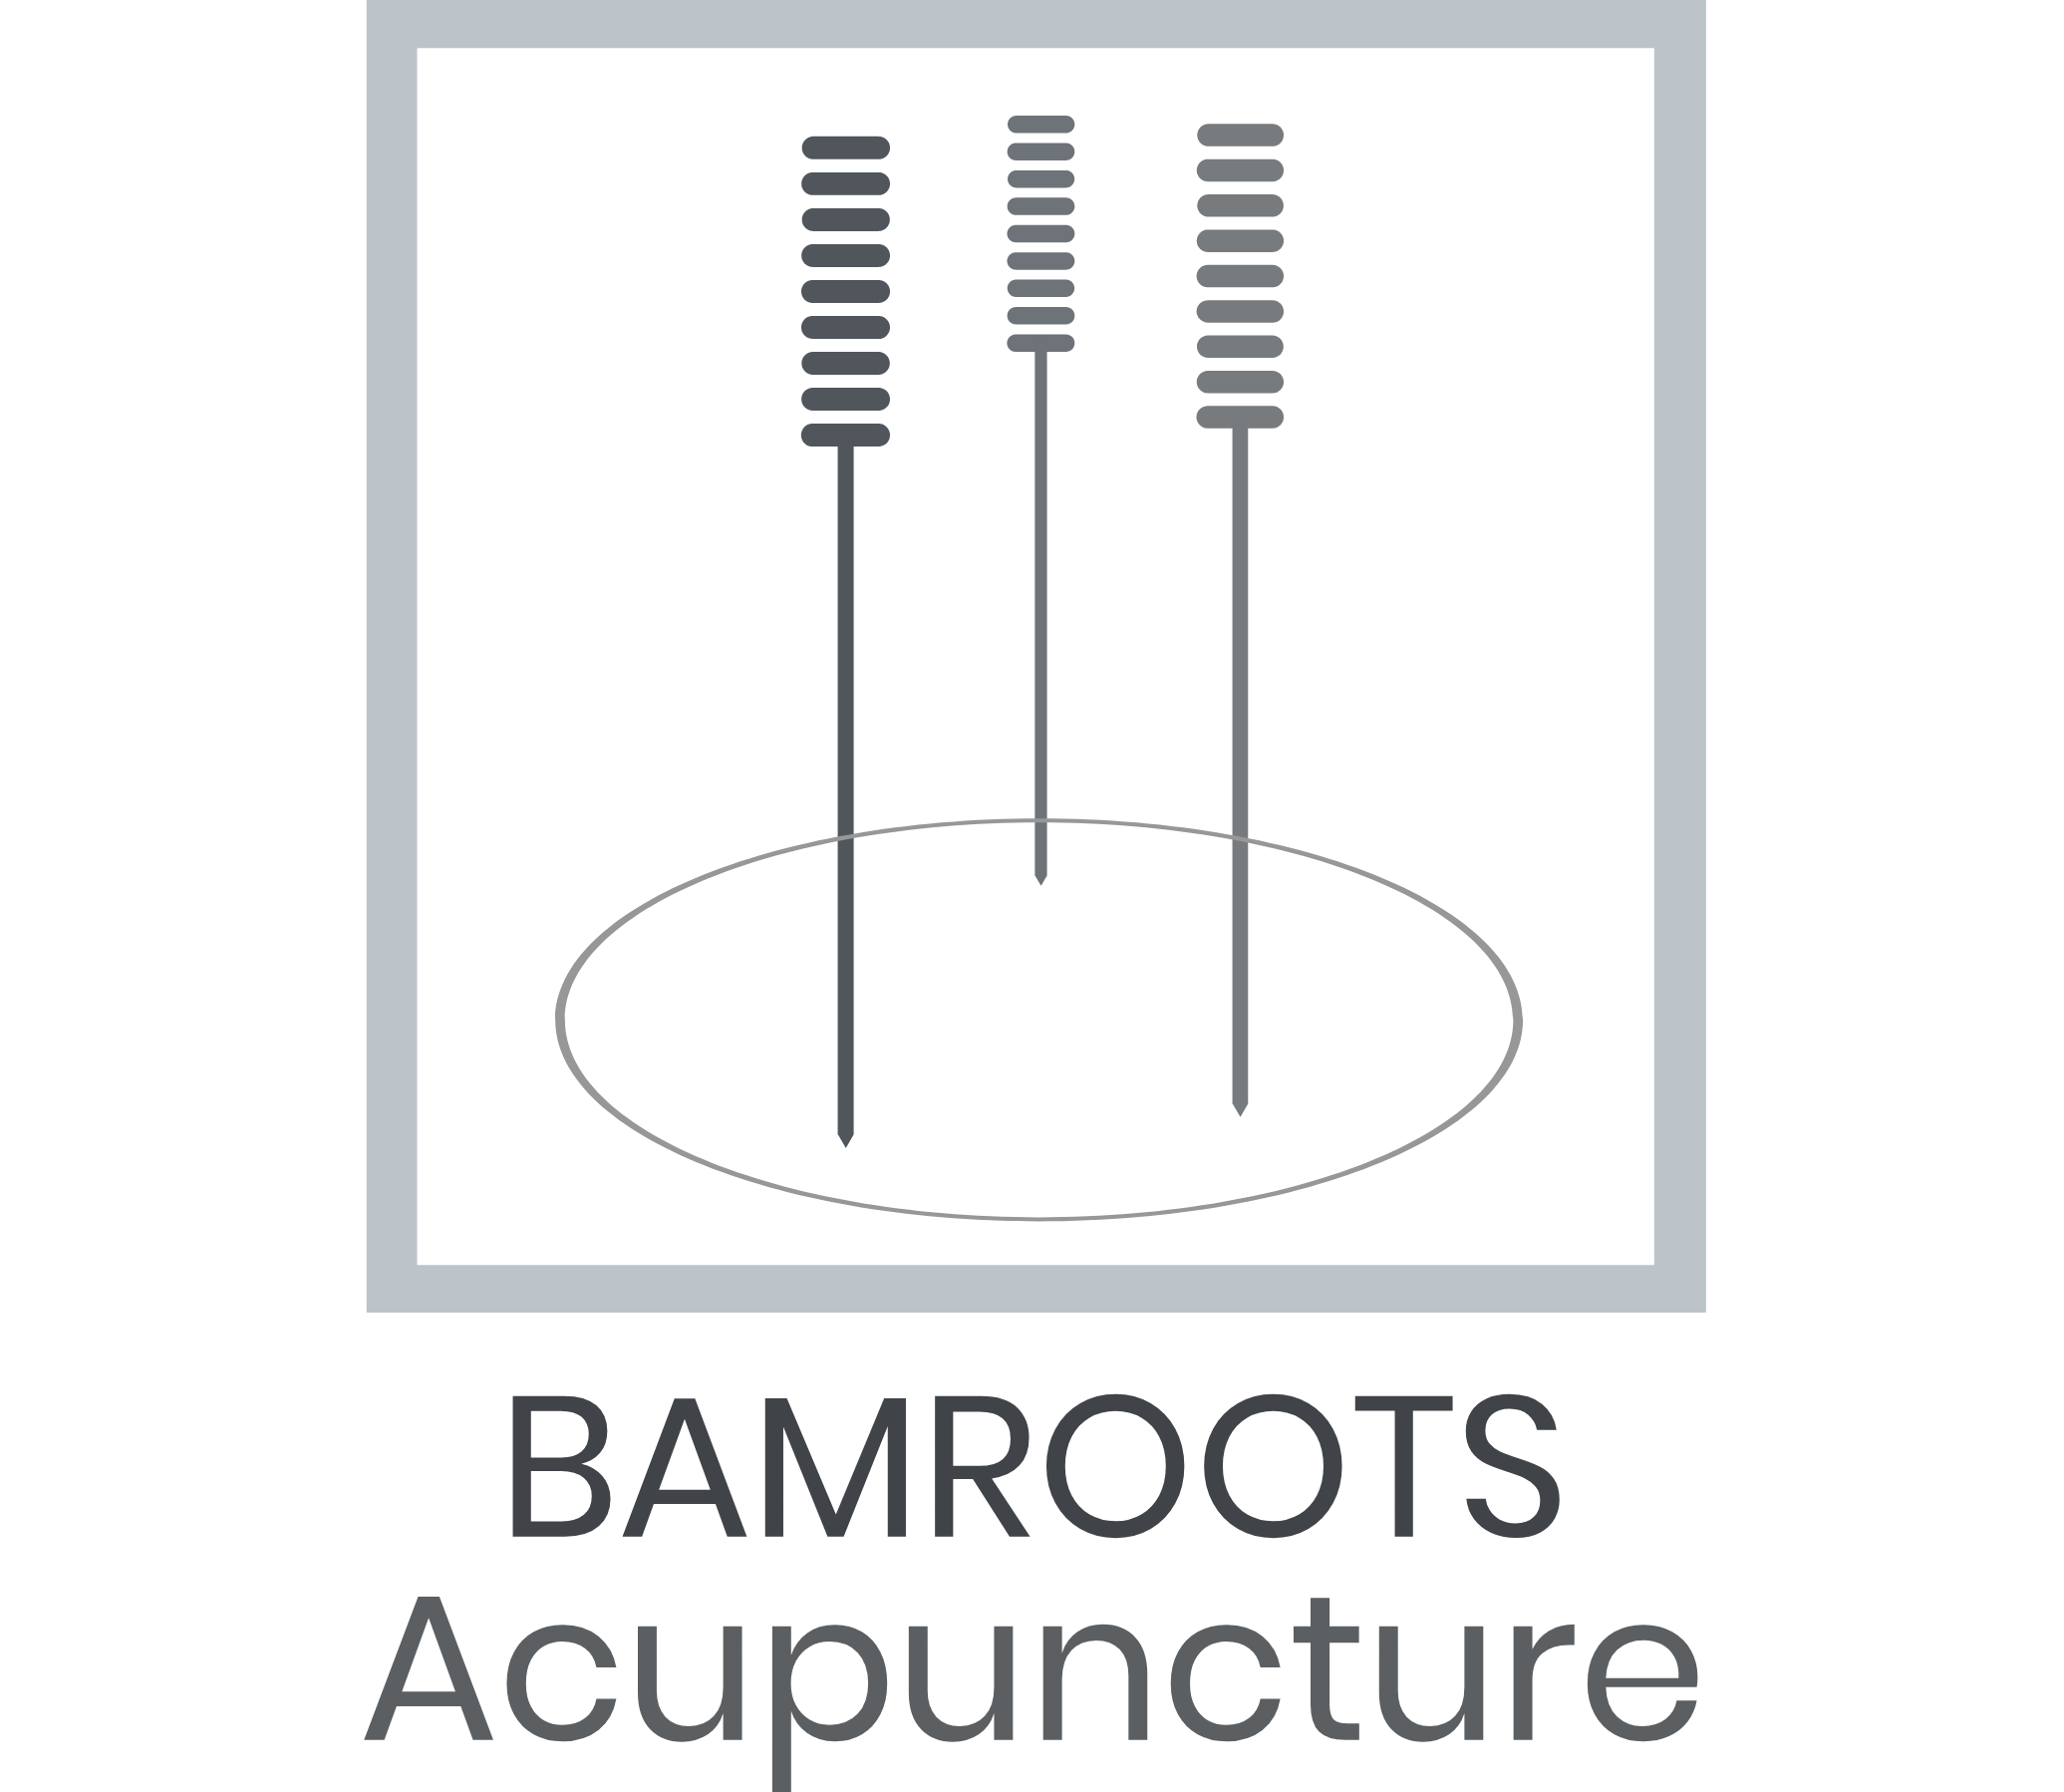 BAMROOTS Acupuncture